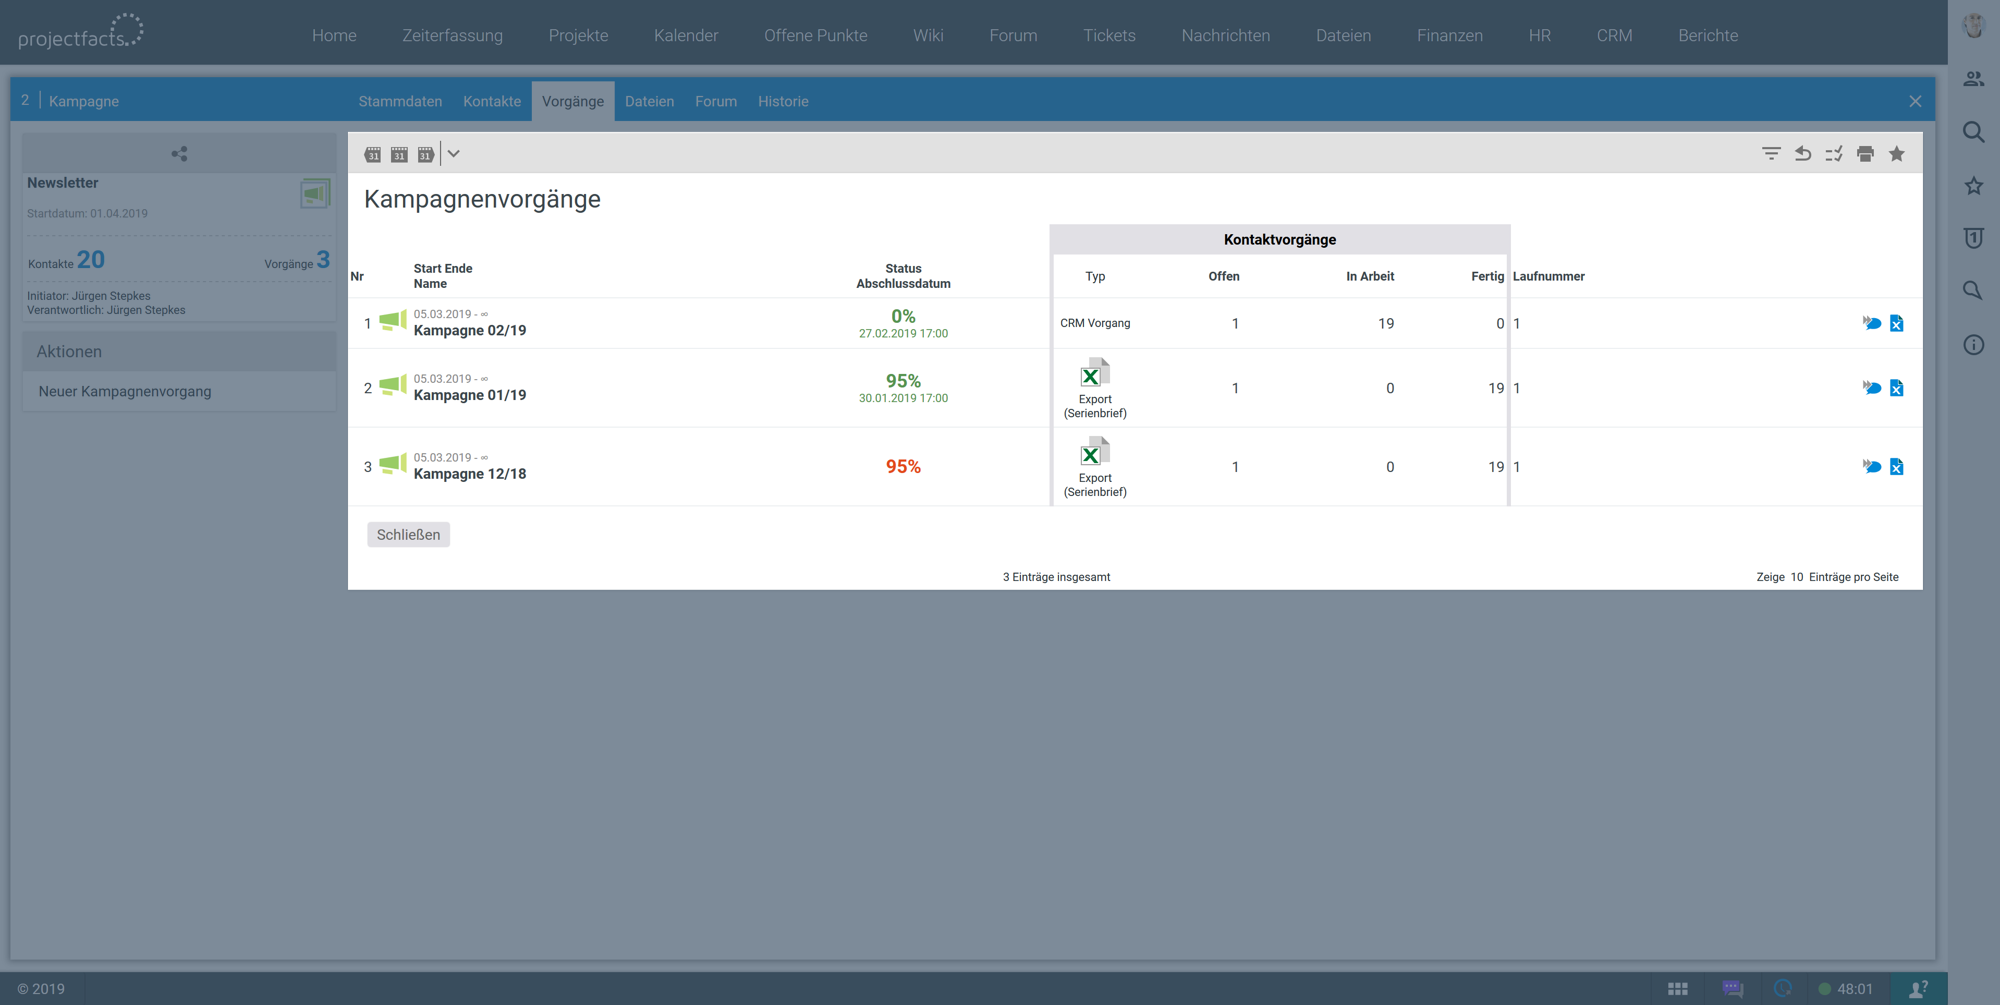 Kampagnenmanagement im CRM Tool von projectfacts